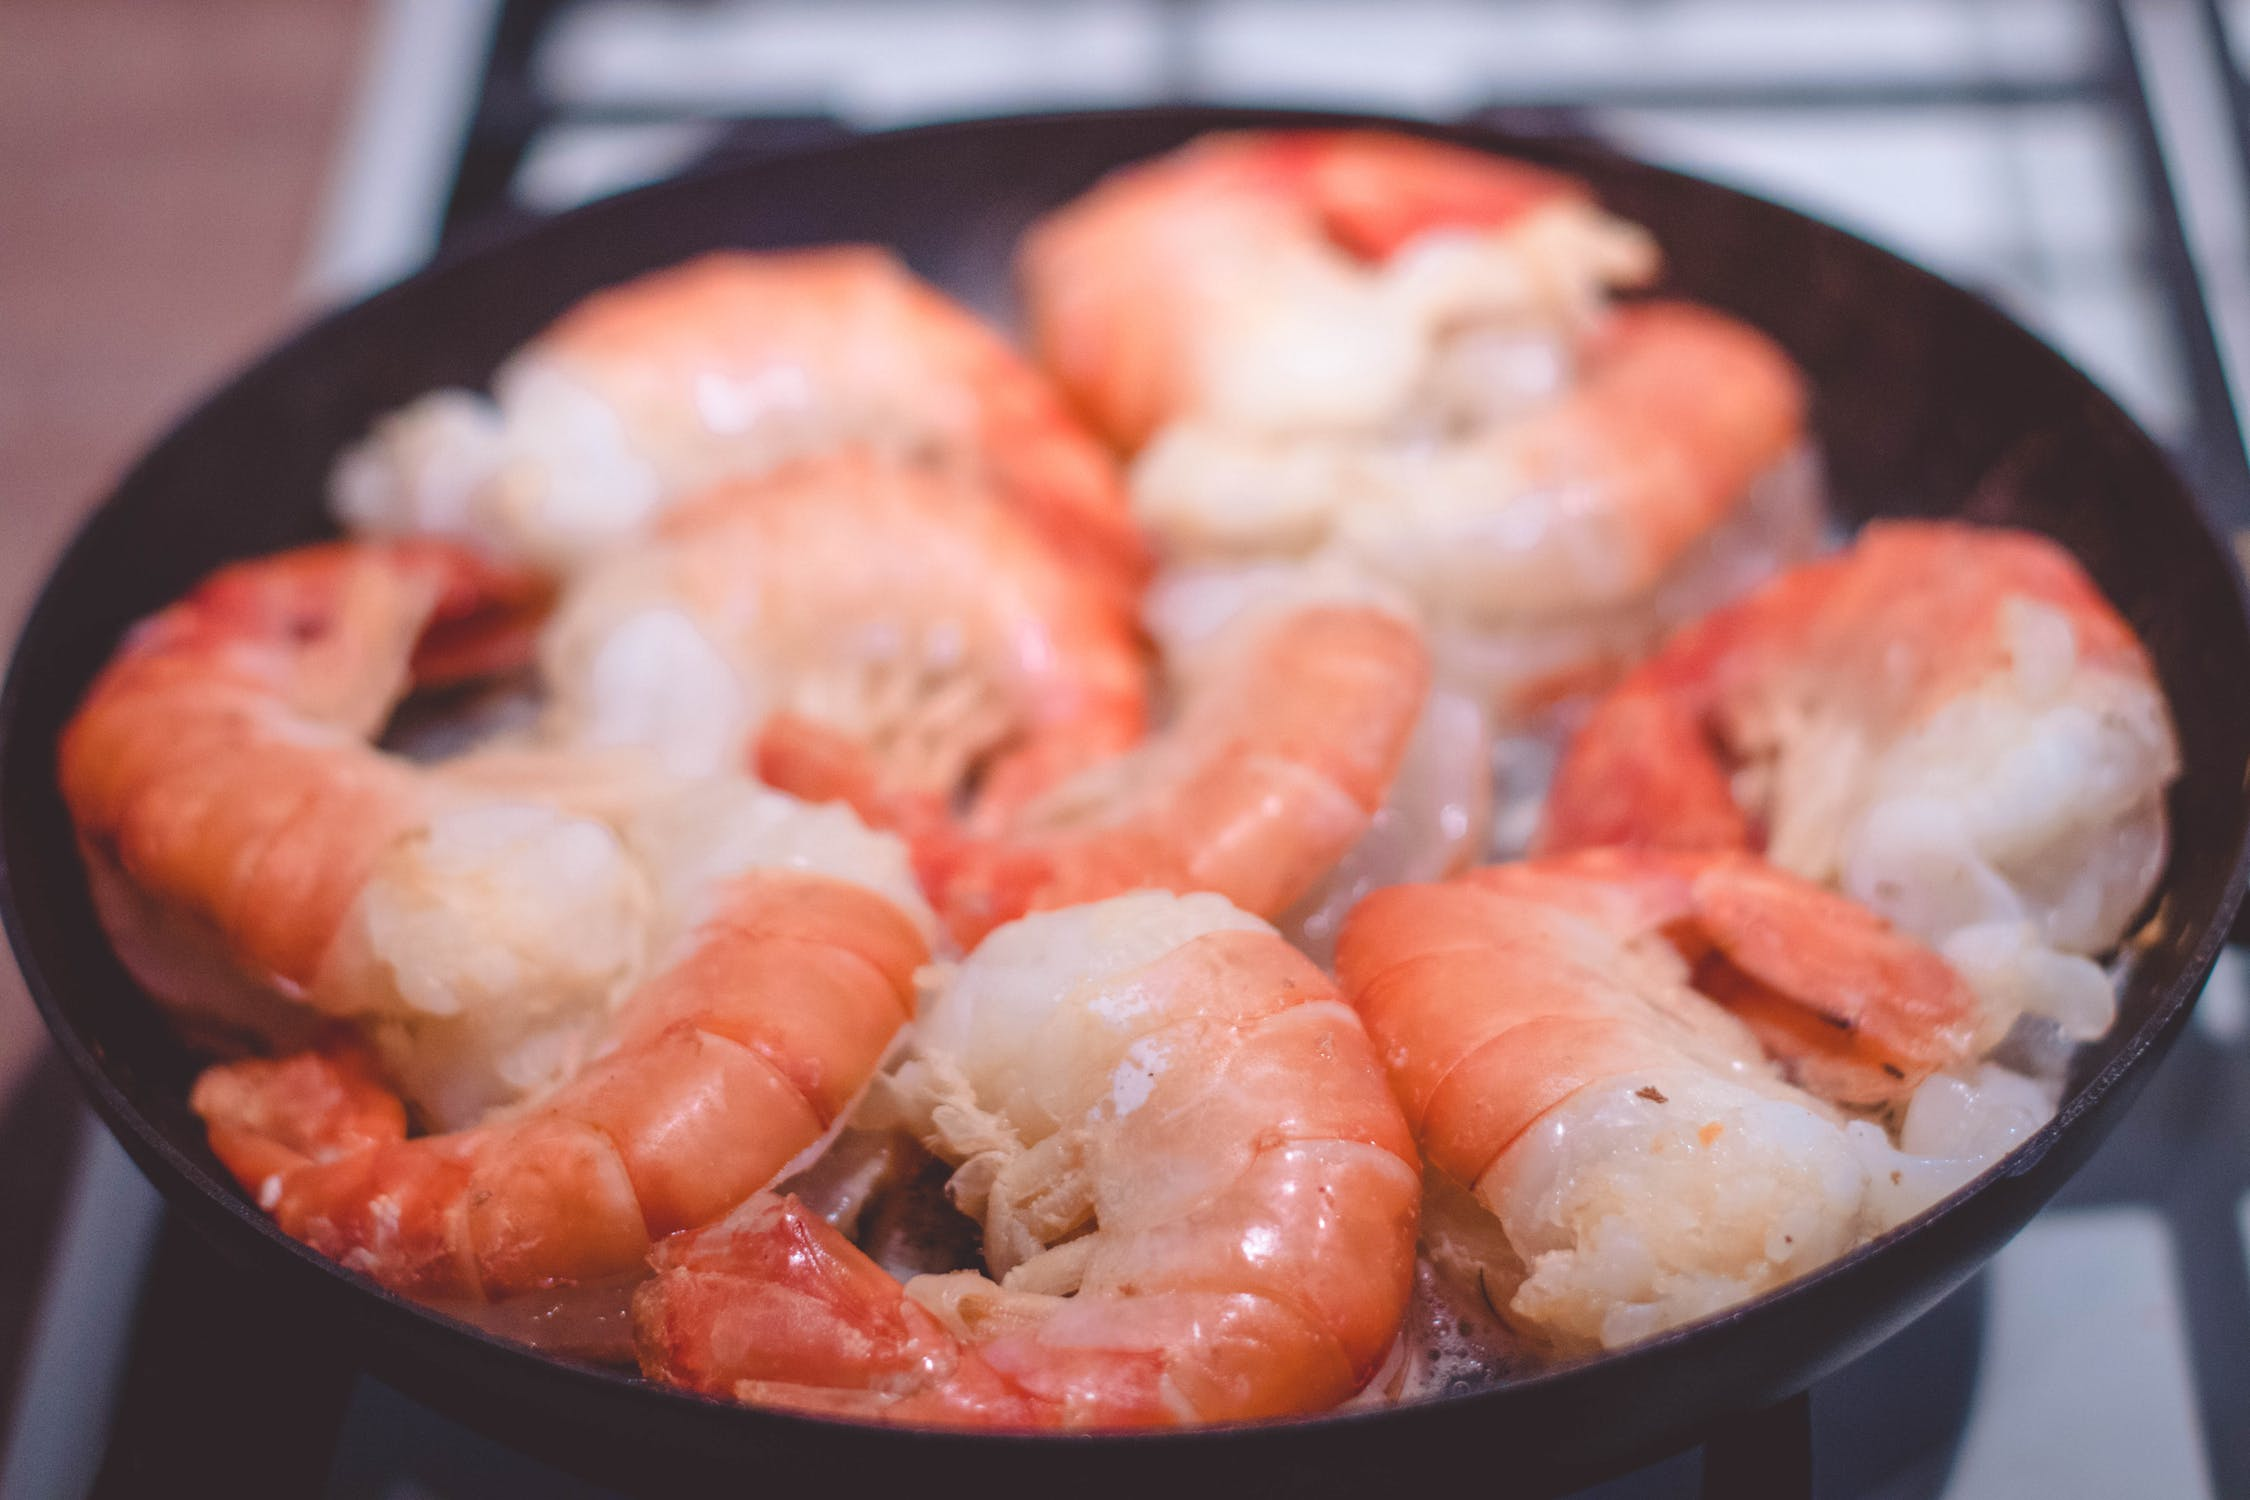 Several shrimp in a small skillet